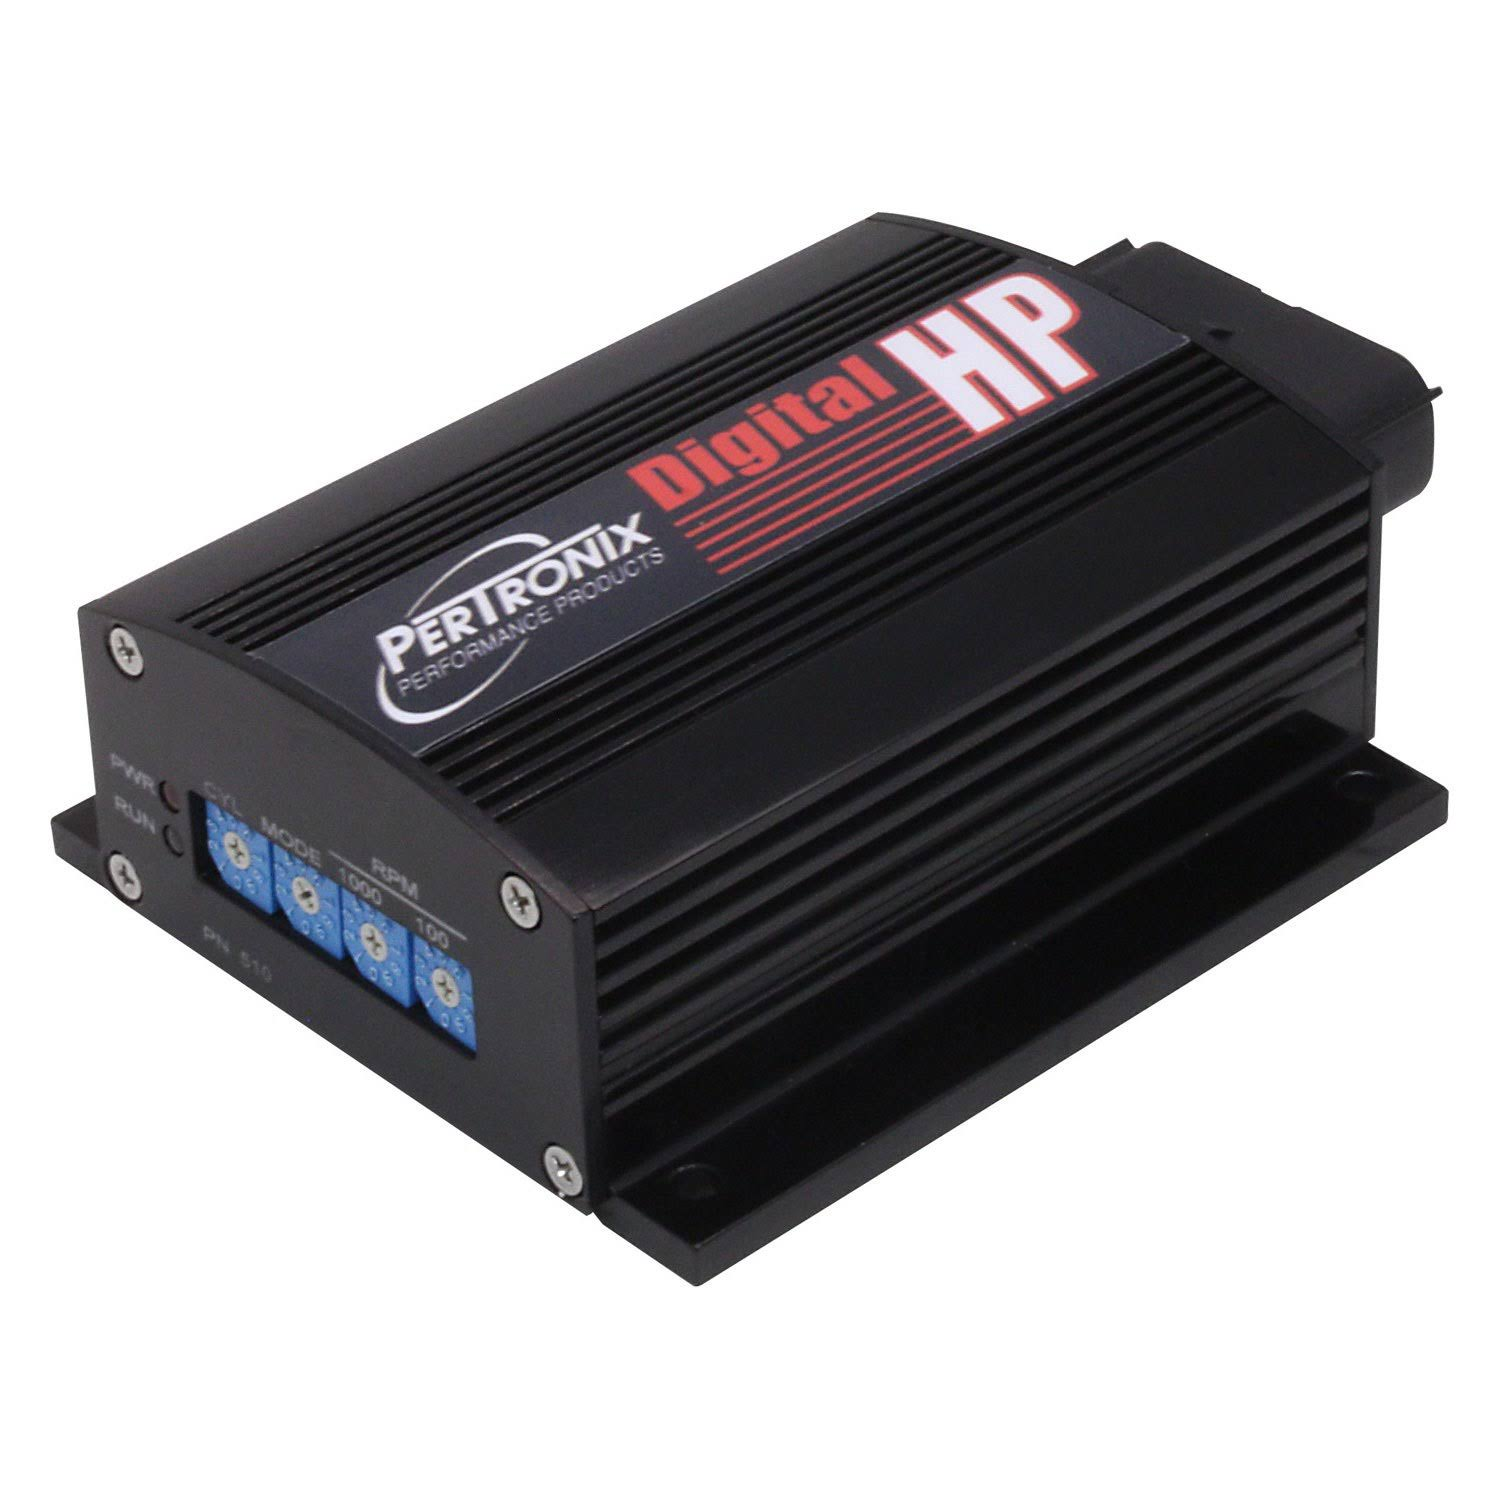 Pertronix 510 Digital HP Ignition Box - Black